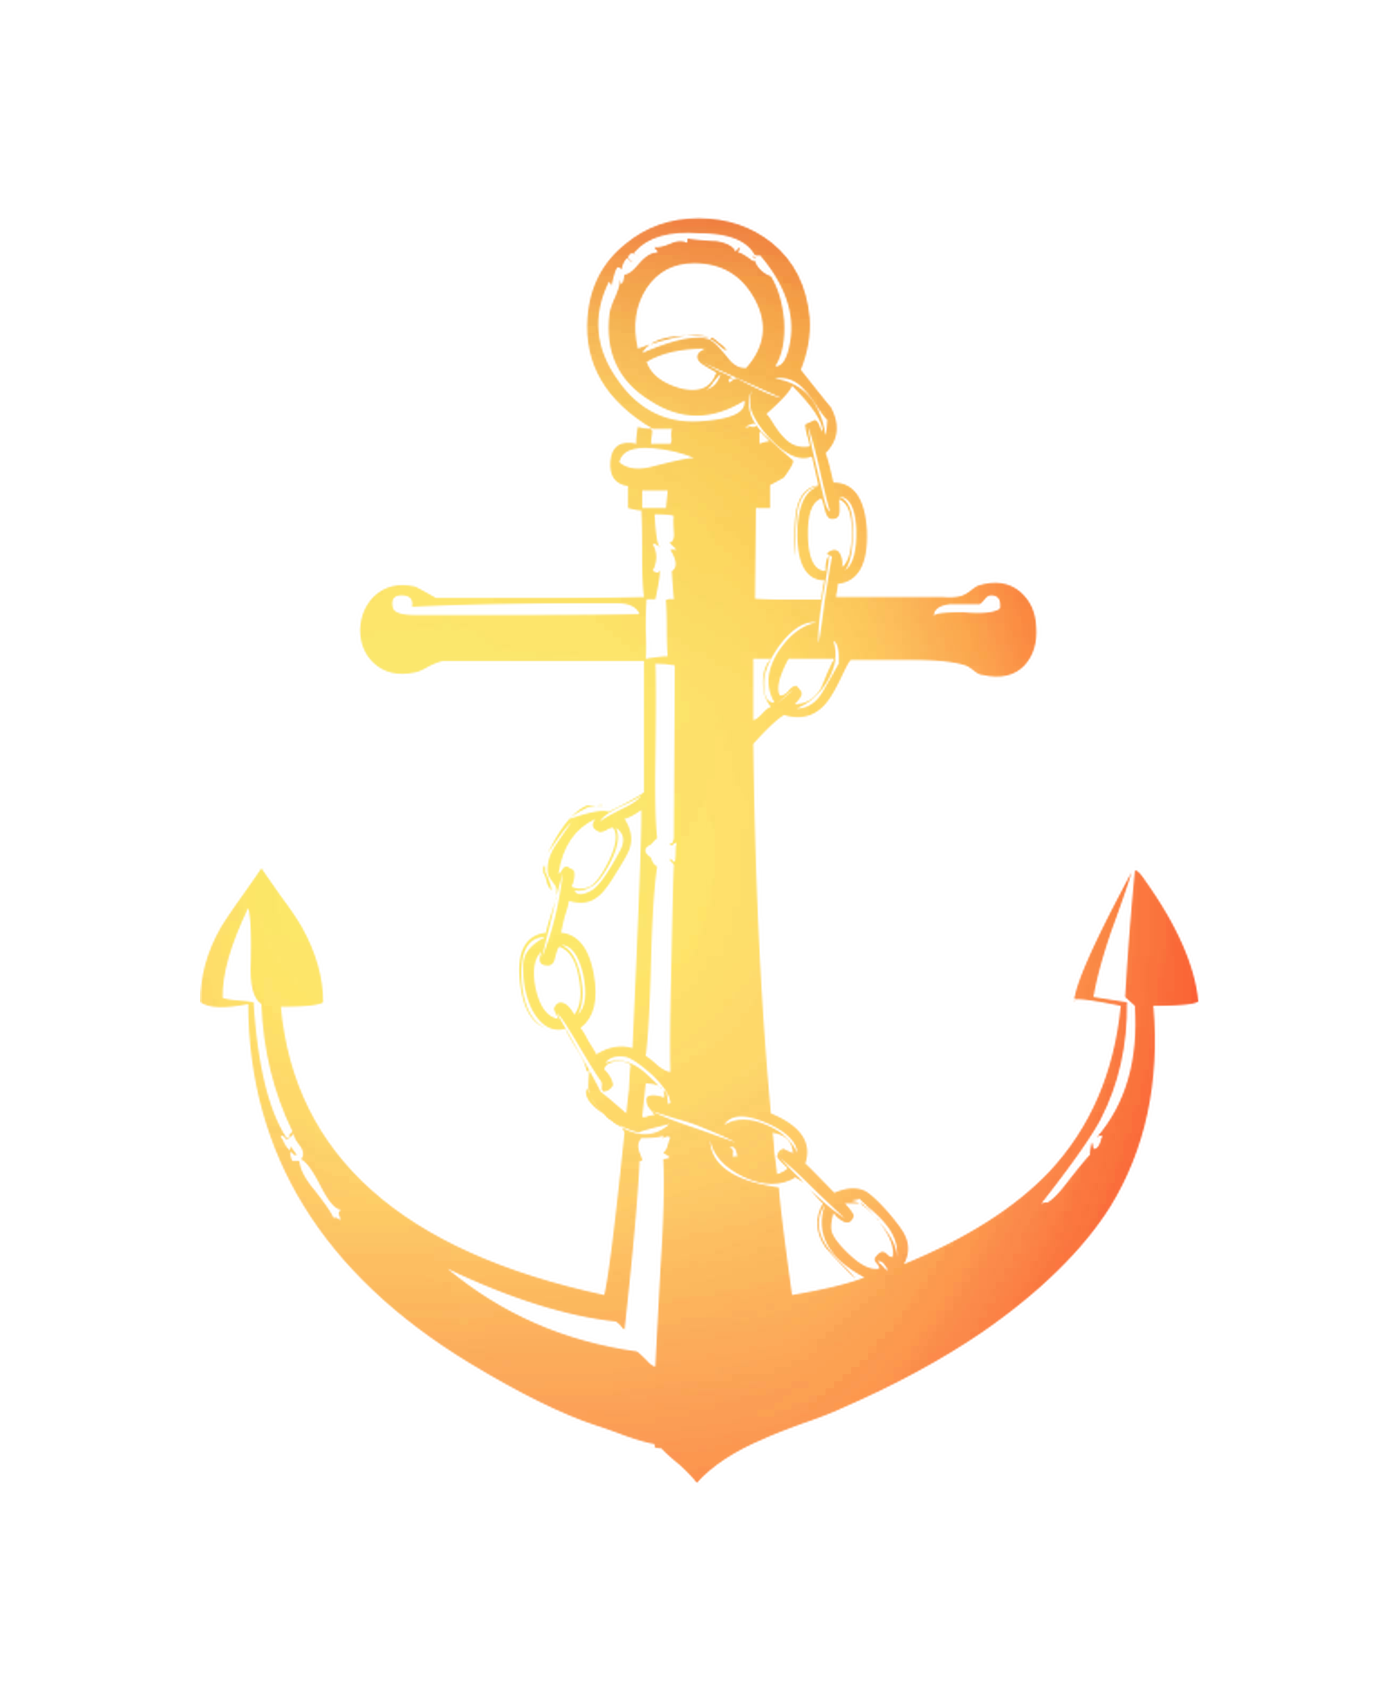 Chain and anchor circle clipart image freeuse stock Anchor Chain Illustration Rope Image - png download - 1400*1700 ... image freeuse stock